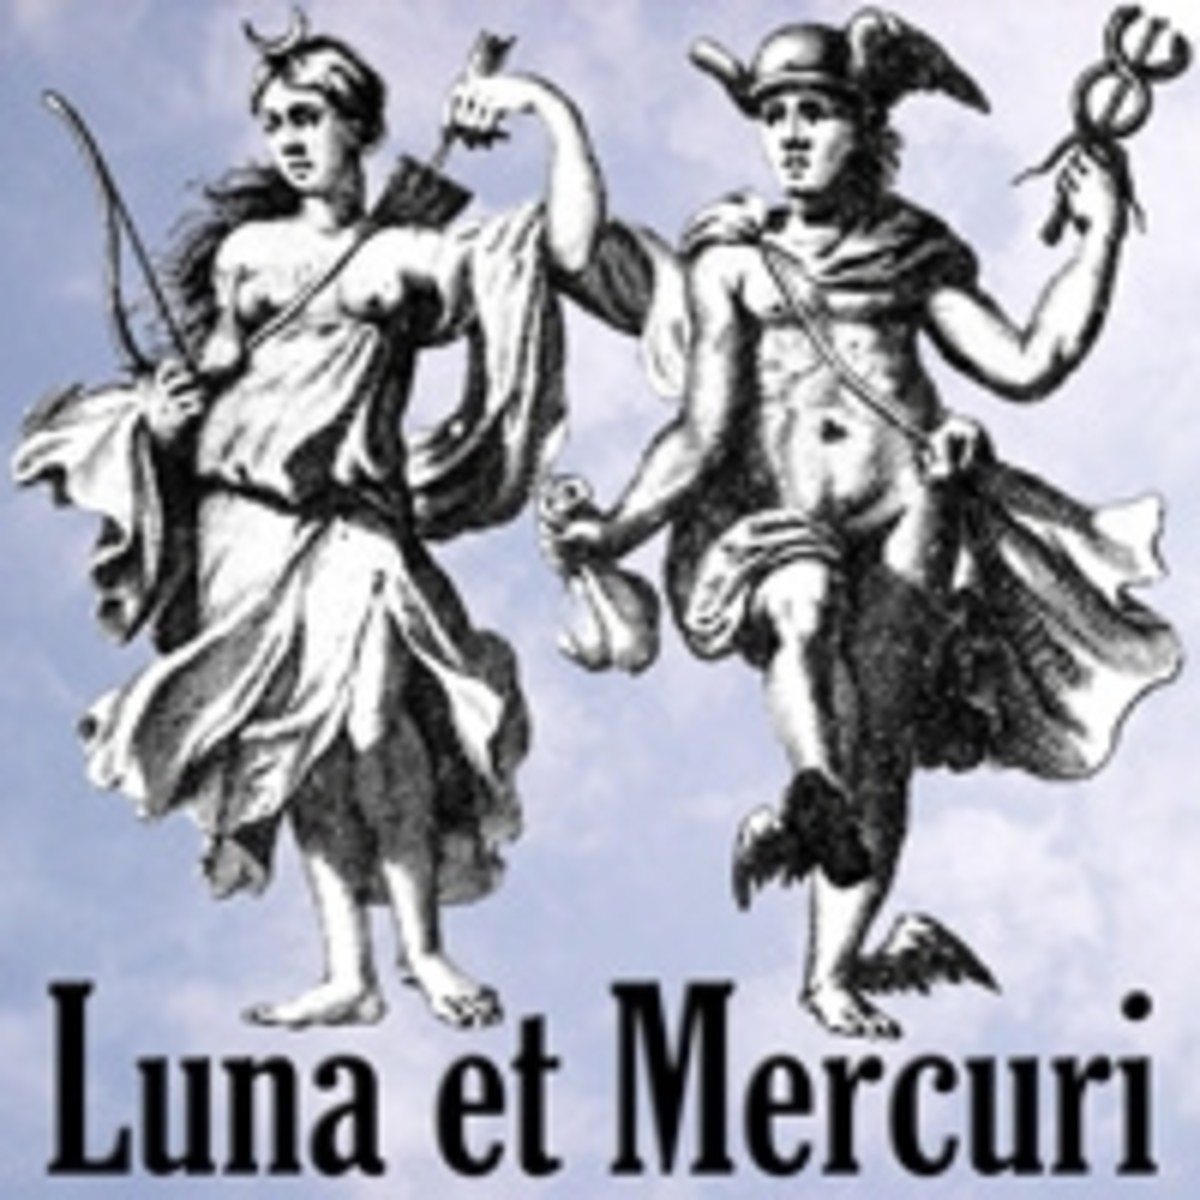 Roman mythology - Luna and Mercury